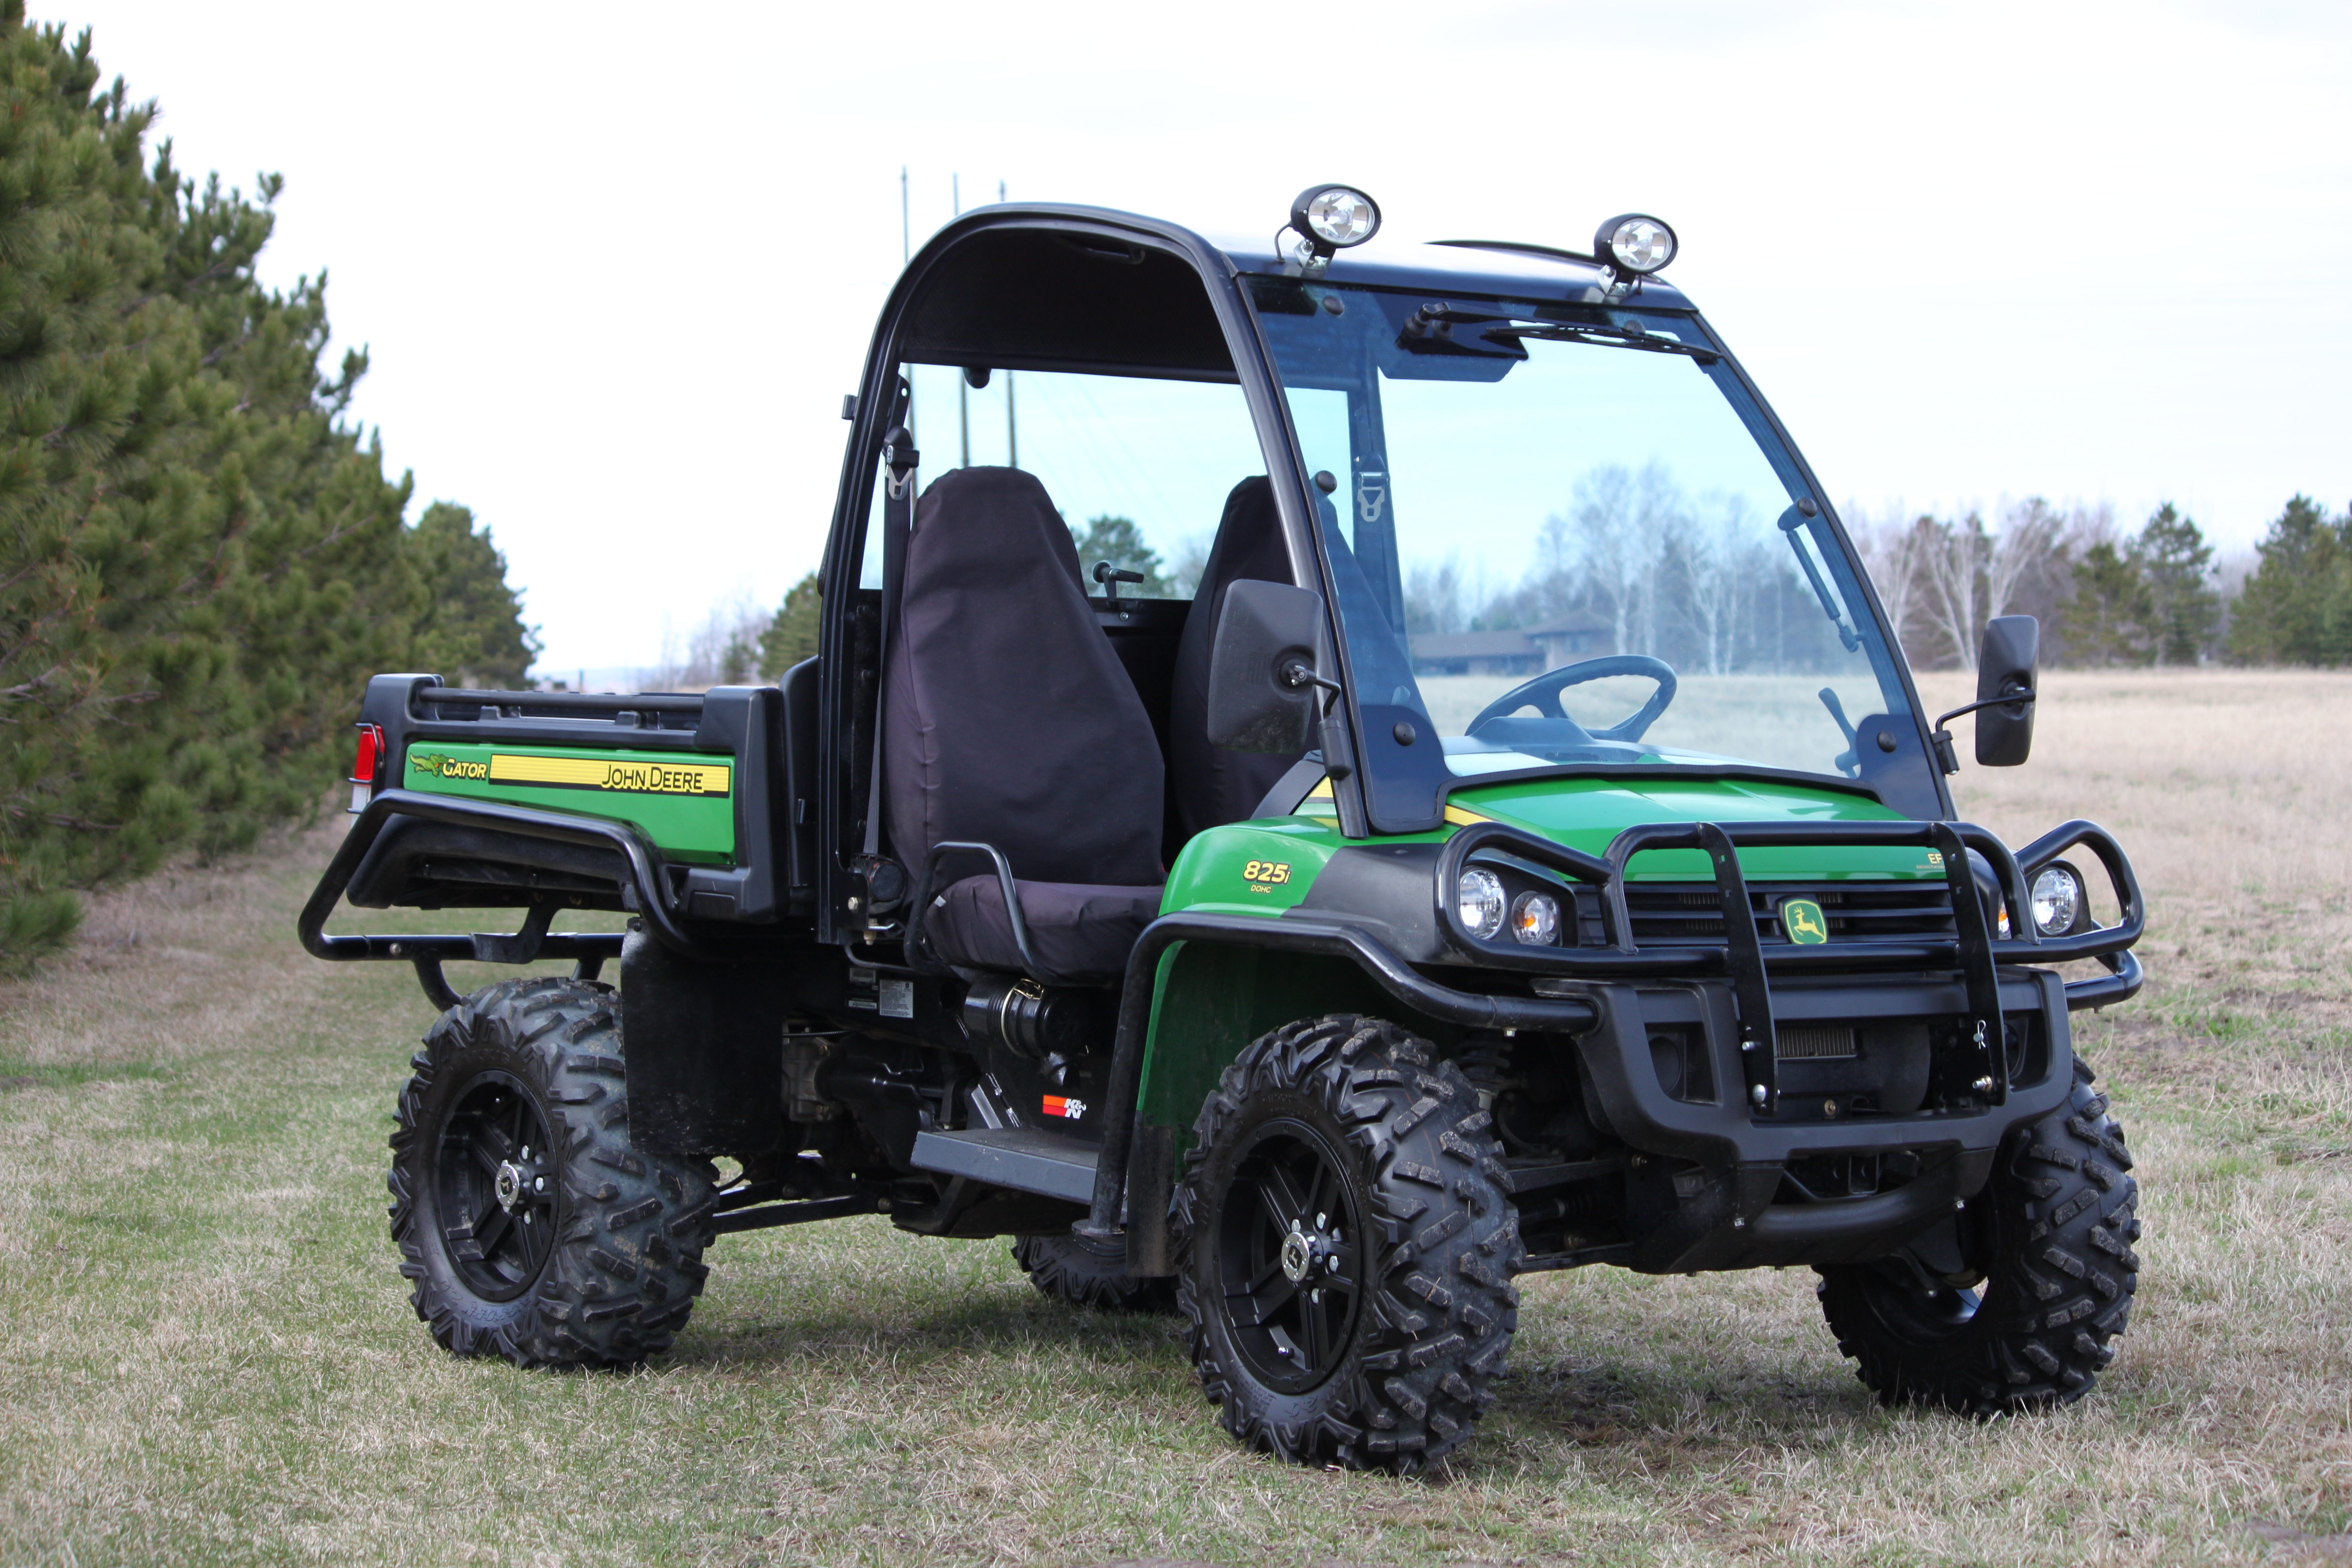 2011 Xuv 825i For Sale John Deere Gator Forums HD Wallpapers Download free images and photos [musssic.tk]